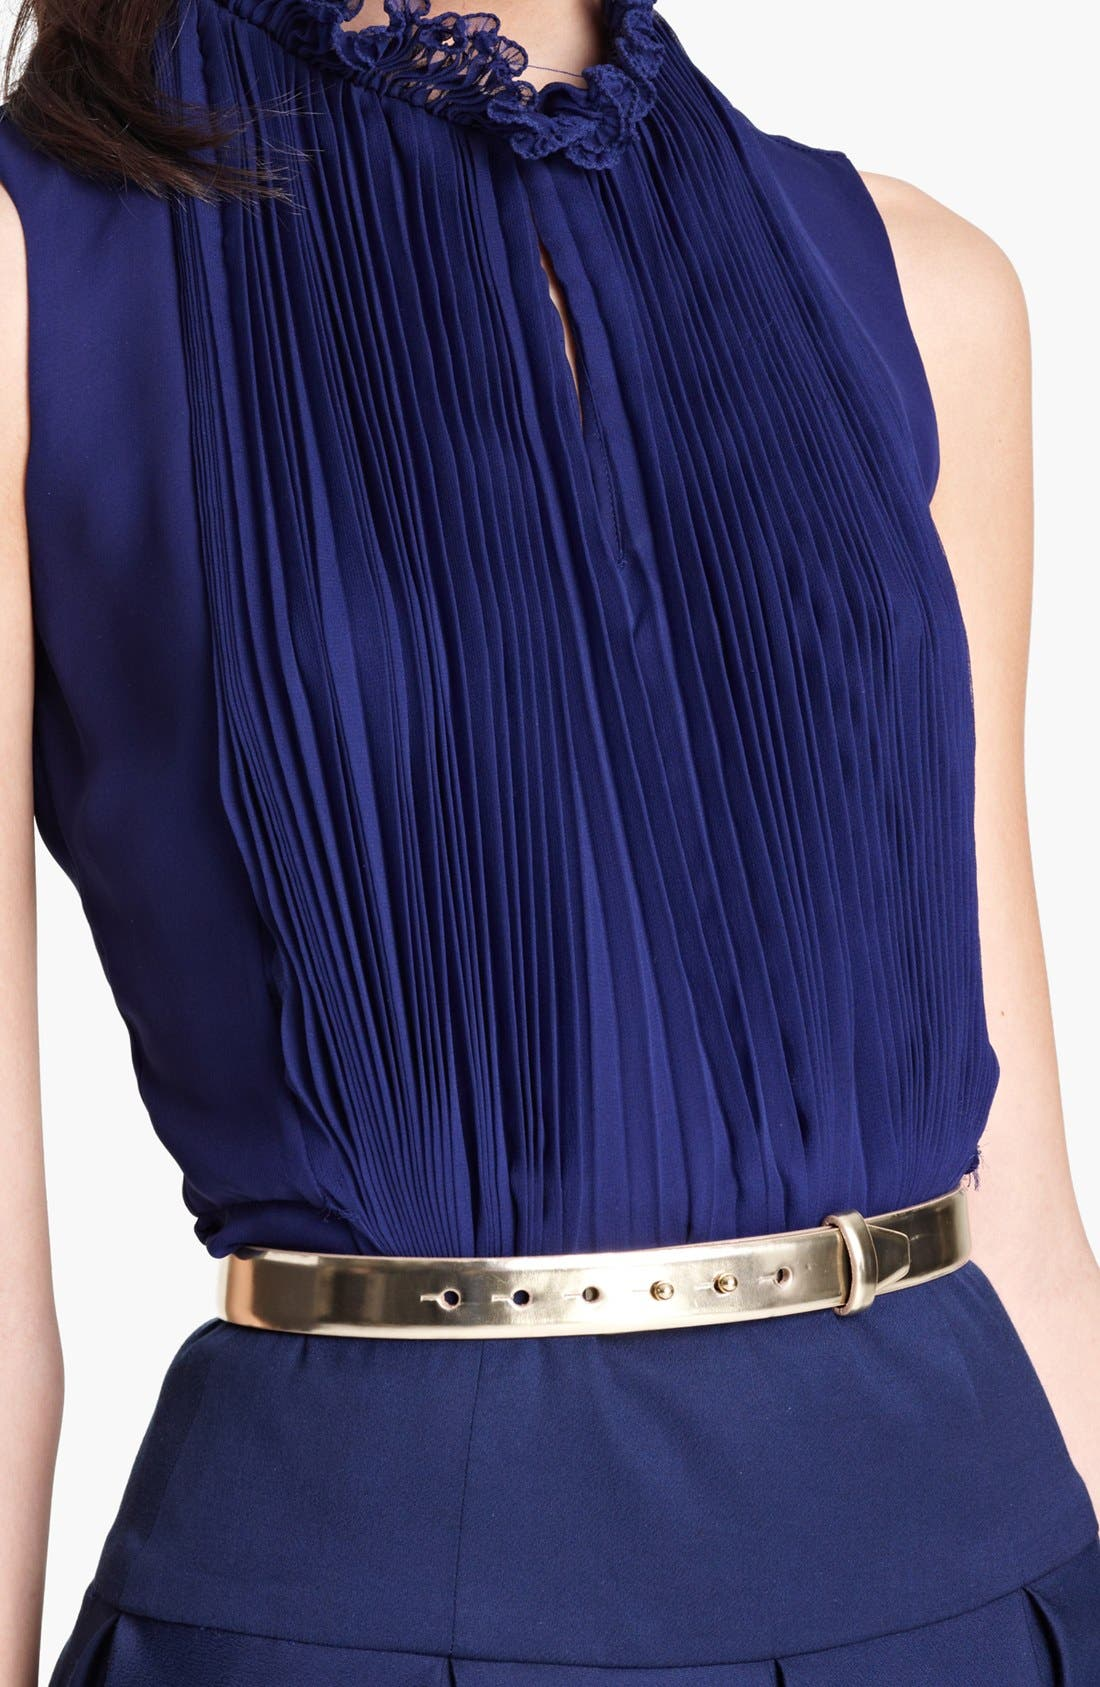 Alternate Image 1 Selected - Oscar de la Renta Slim Metallic Leather Belt